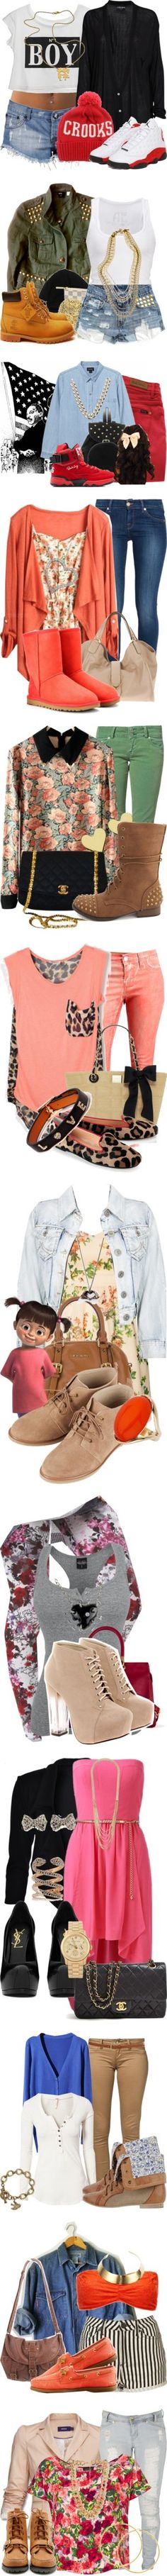 """What I'd Wear!"" by nay-be-mee ❤ liked on Polyvore"